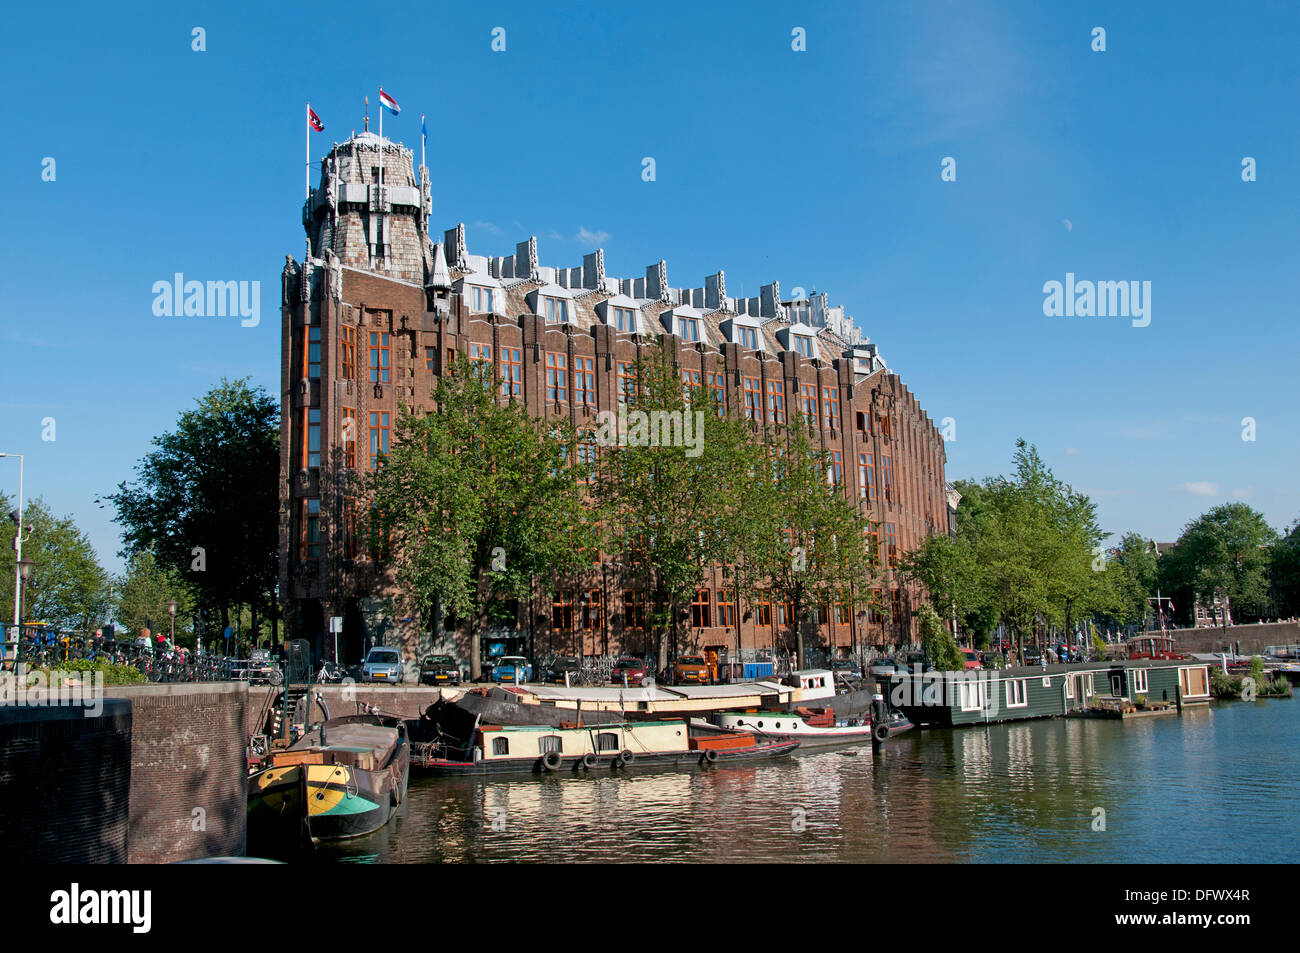 Het Scheepvaarthuis Amsterdam 1913 The Shipping Amsterdam (Amsterdam School architecture style) Waalseilandsgracht - Stock Image